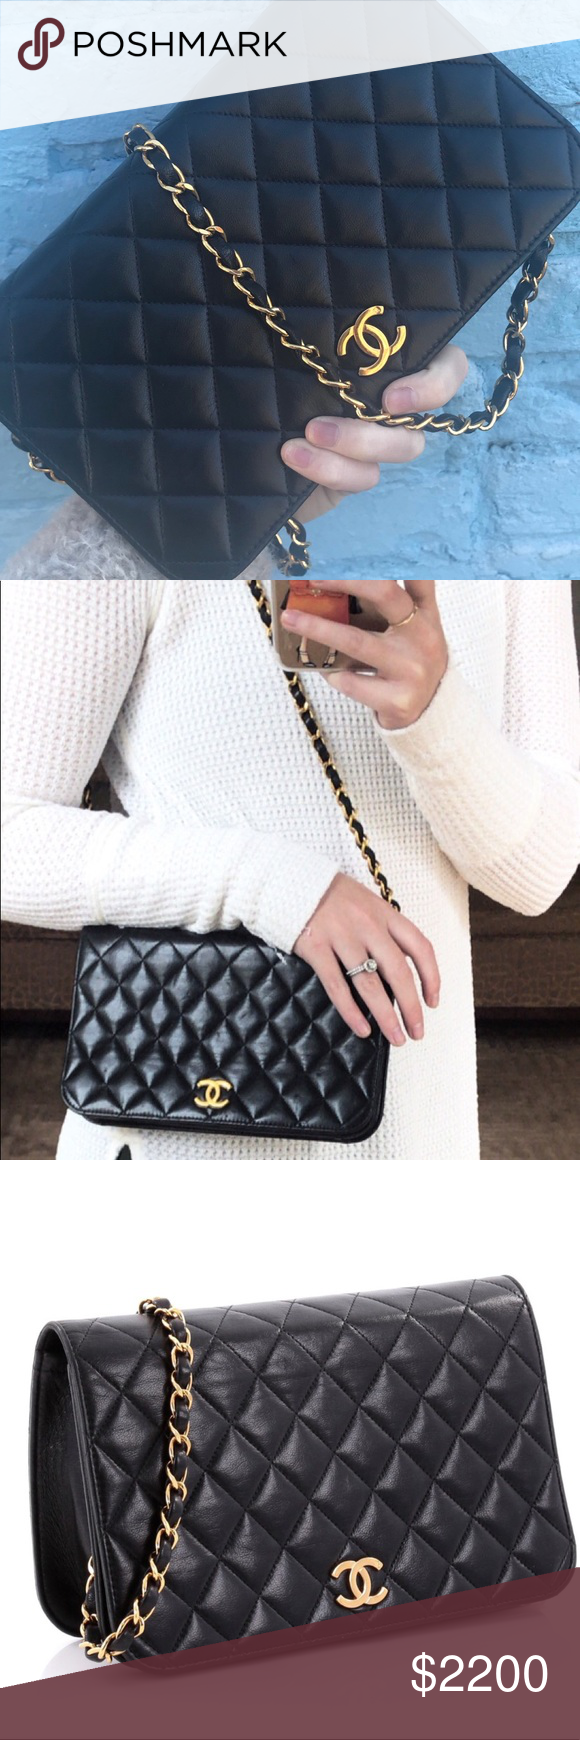 a0bf3c40bdc6 Chanel Vintage CC flap lambskin shoulder bag This authentic Chanel Vintage  3 Way Full Flap Bag